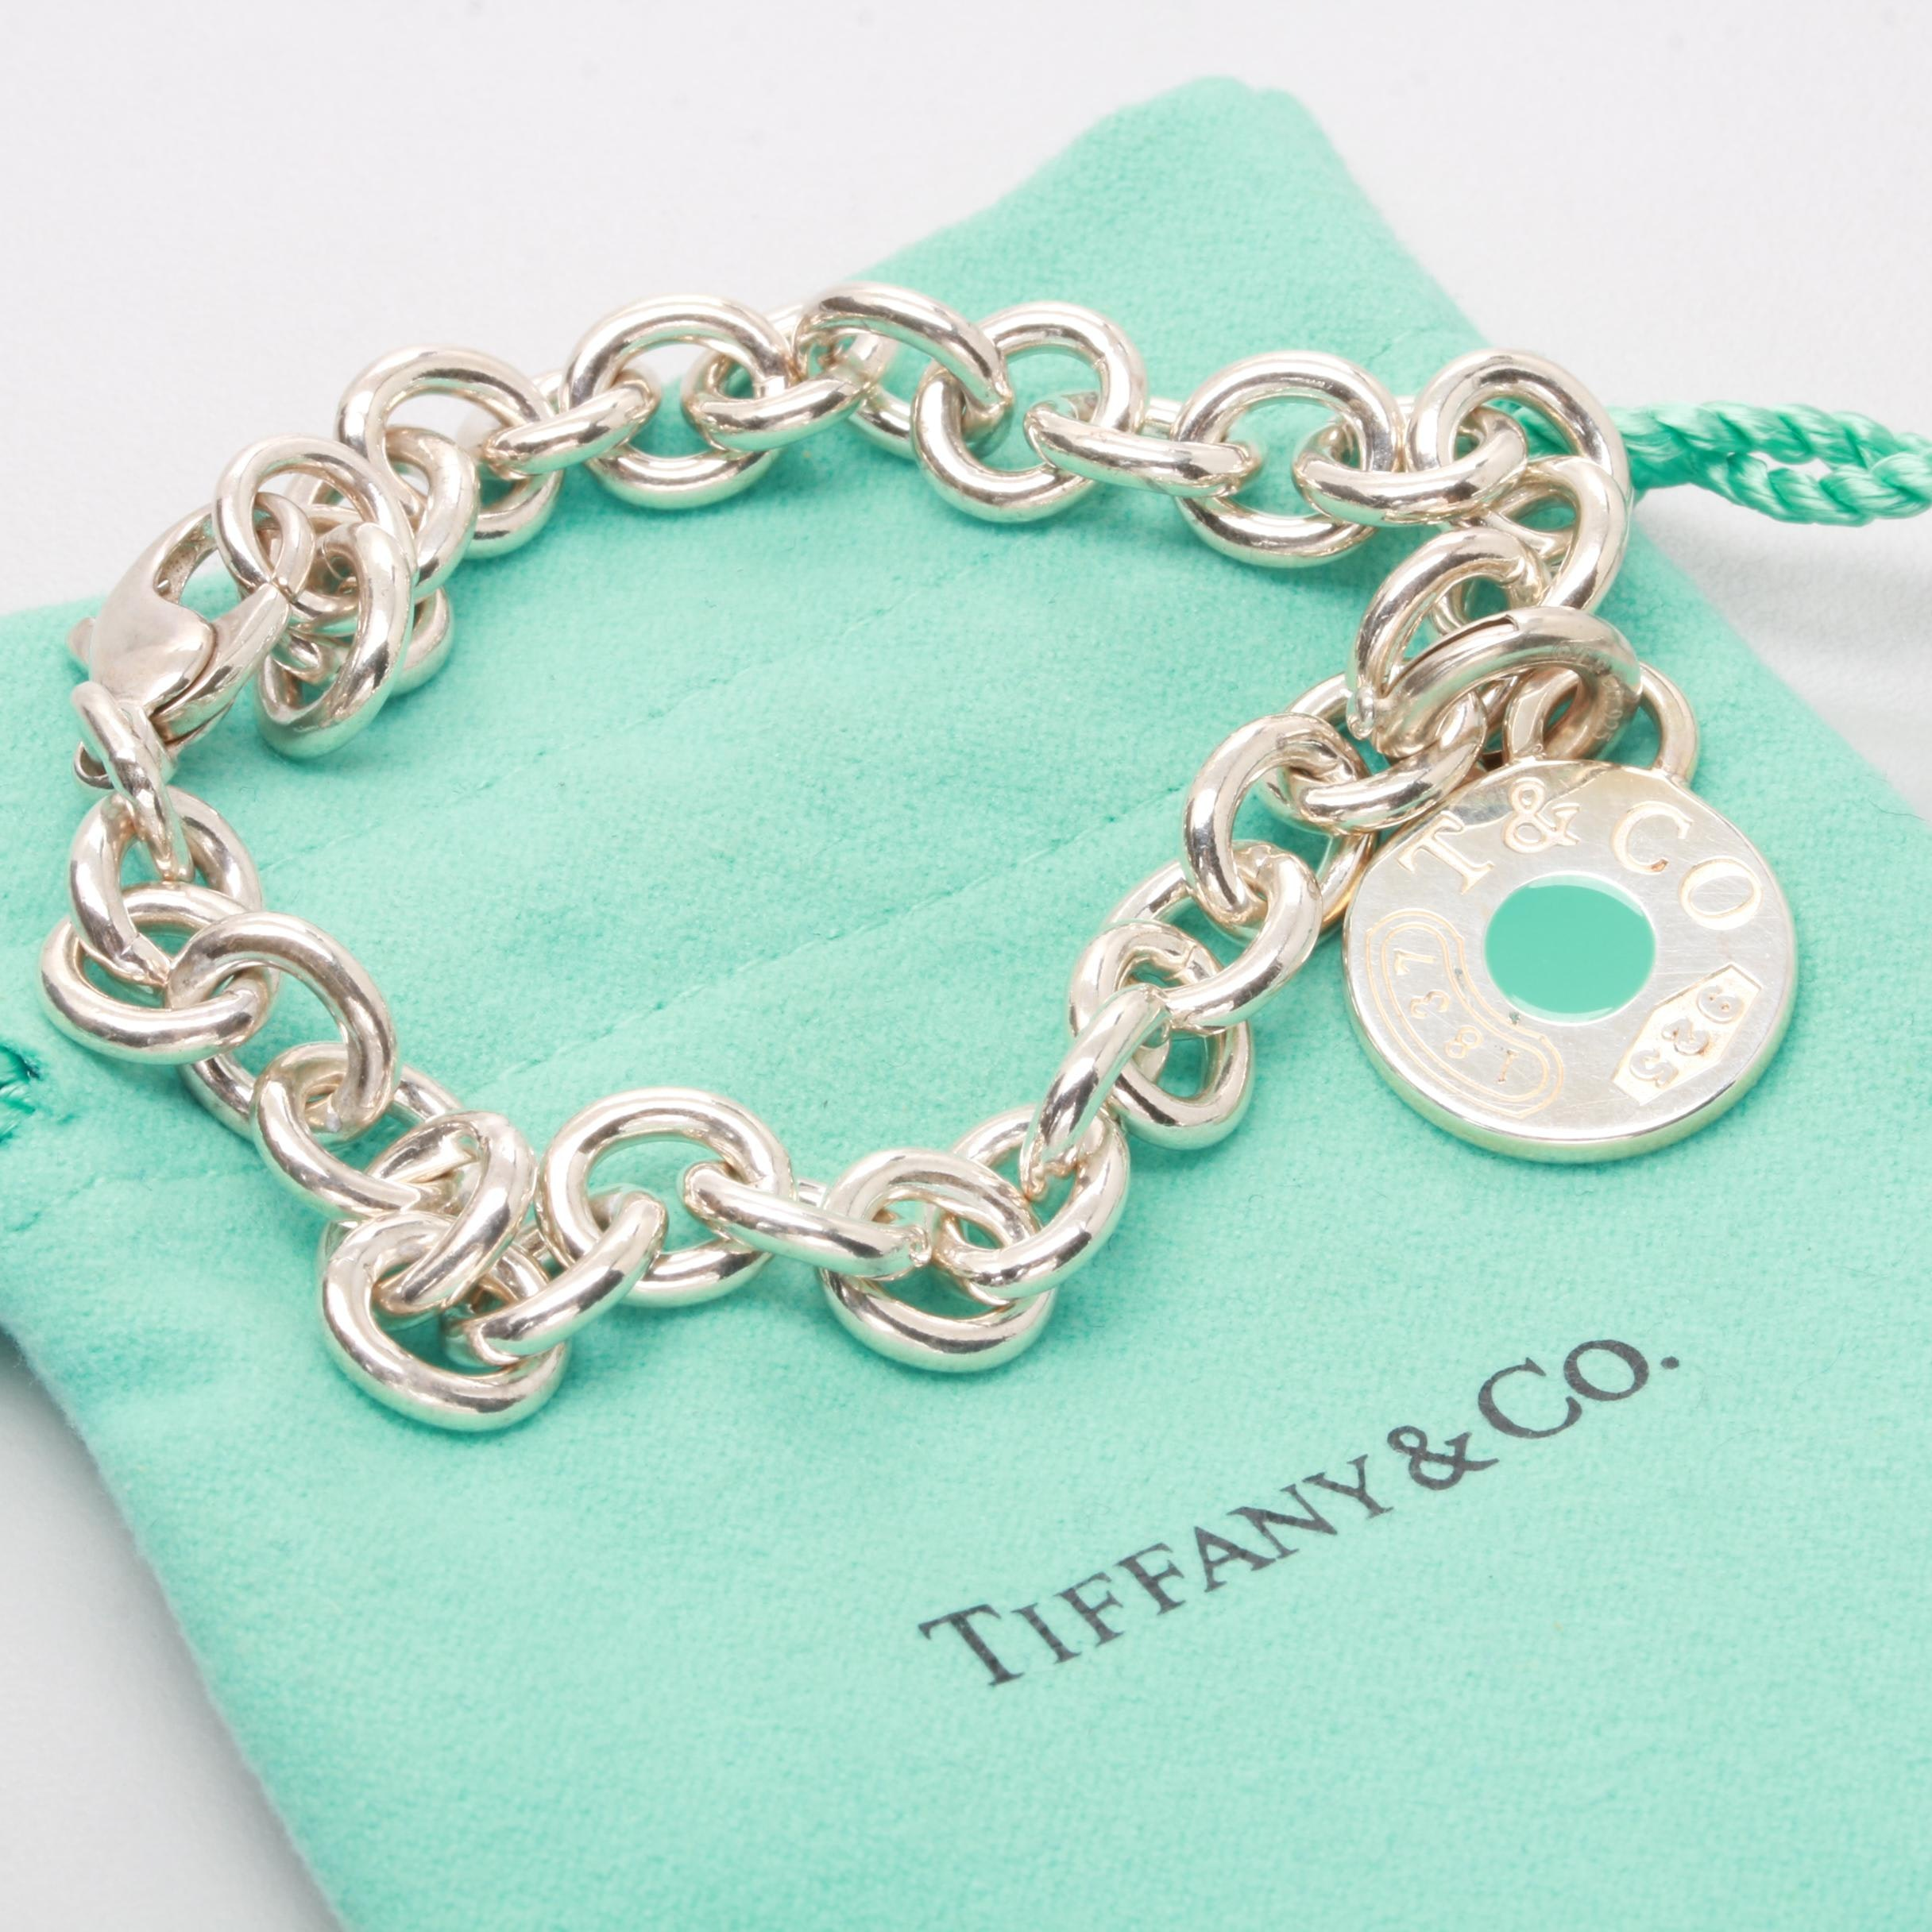 Tiffany & Co Sterling Silver Bracelet with Removable Enamel Charm